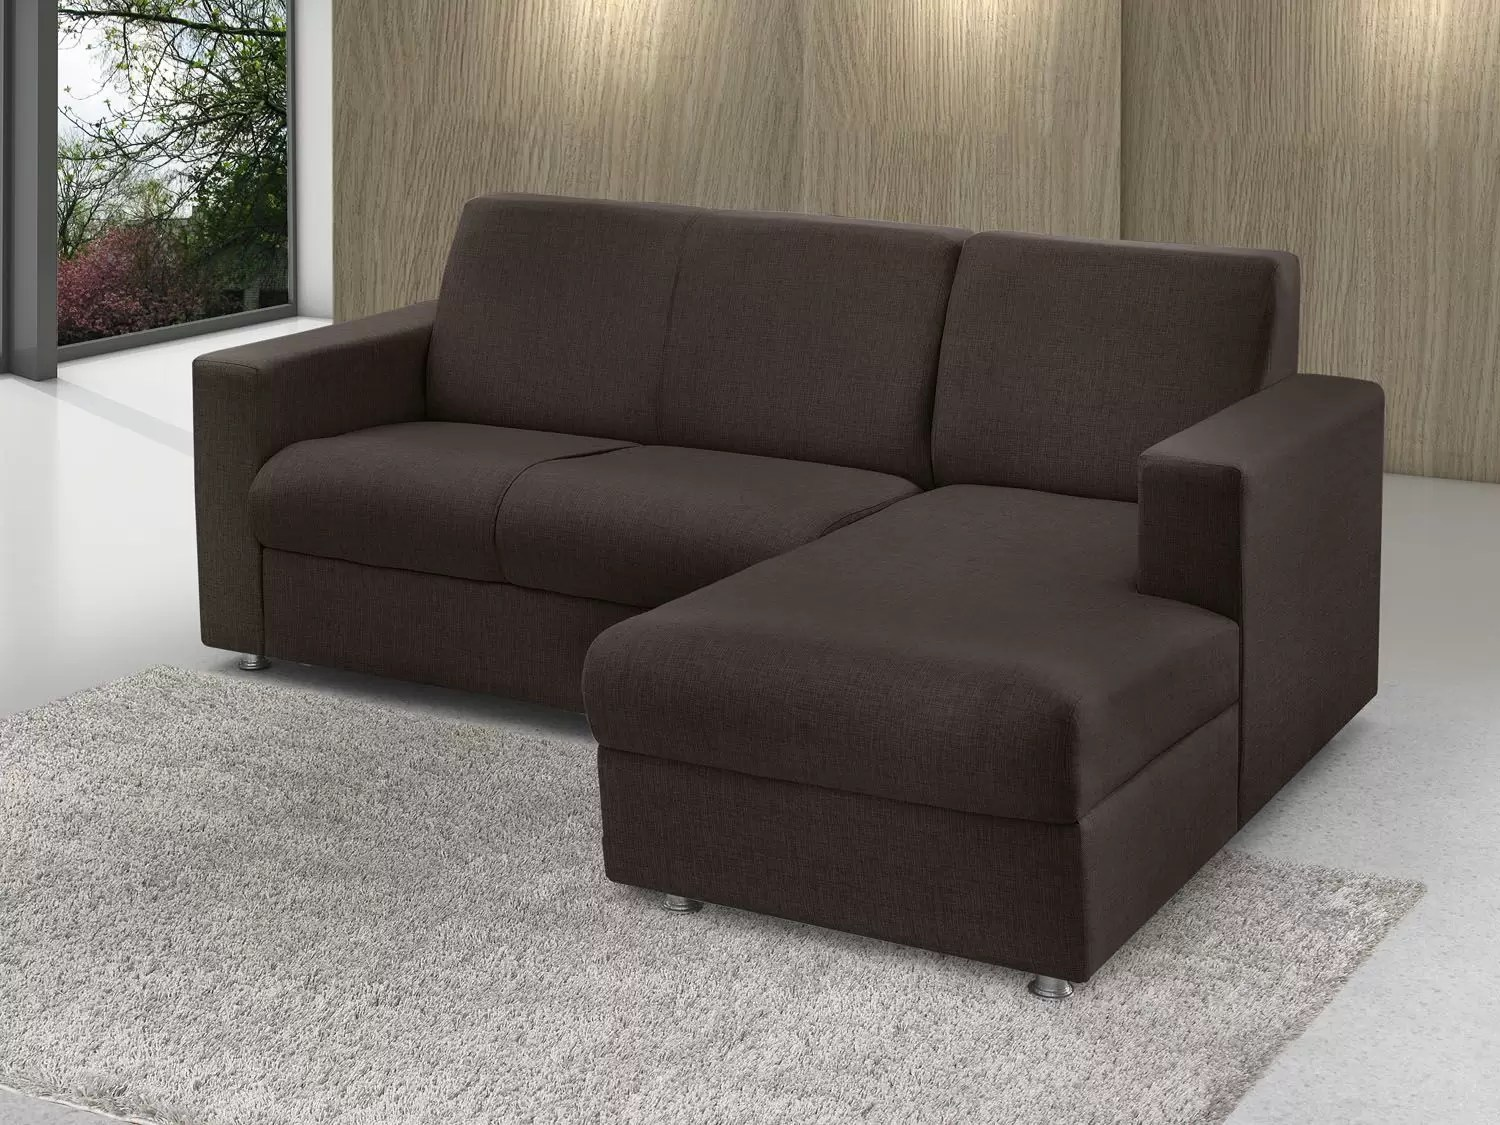 Sofa Moderno 2 Lugares Sofá Chaise 2 Lugares Chenille Roma American Comfort